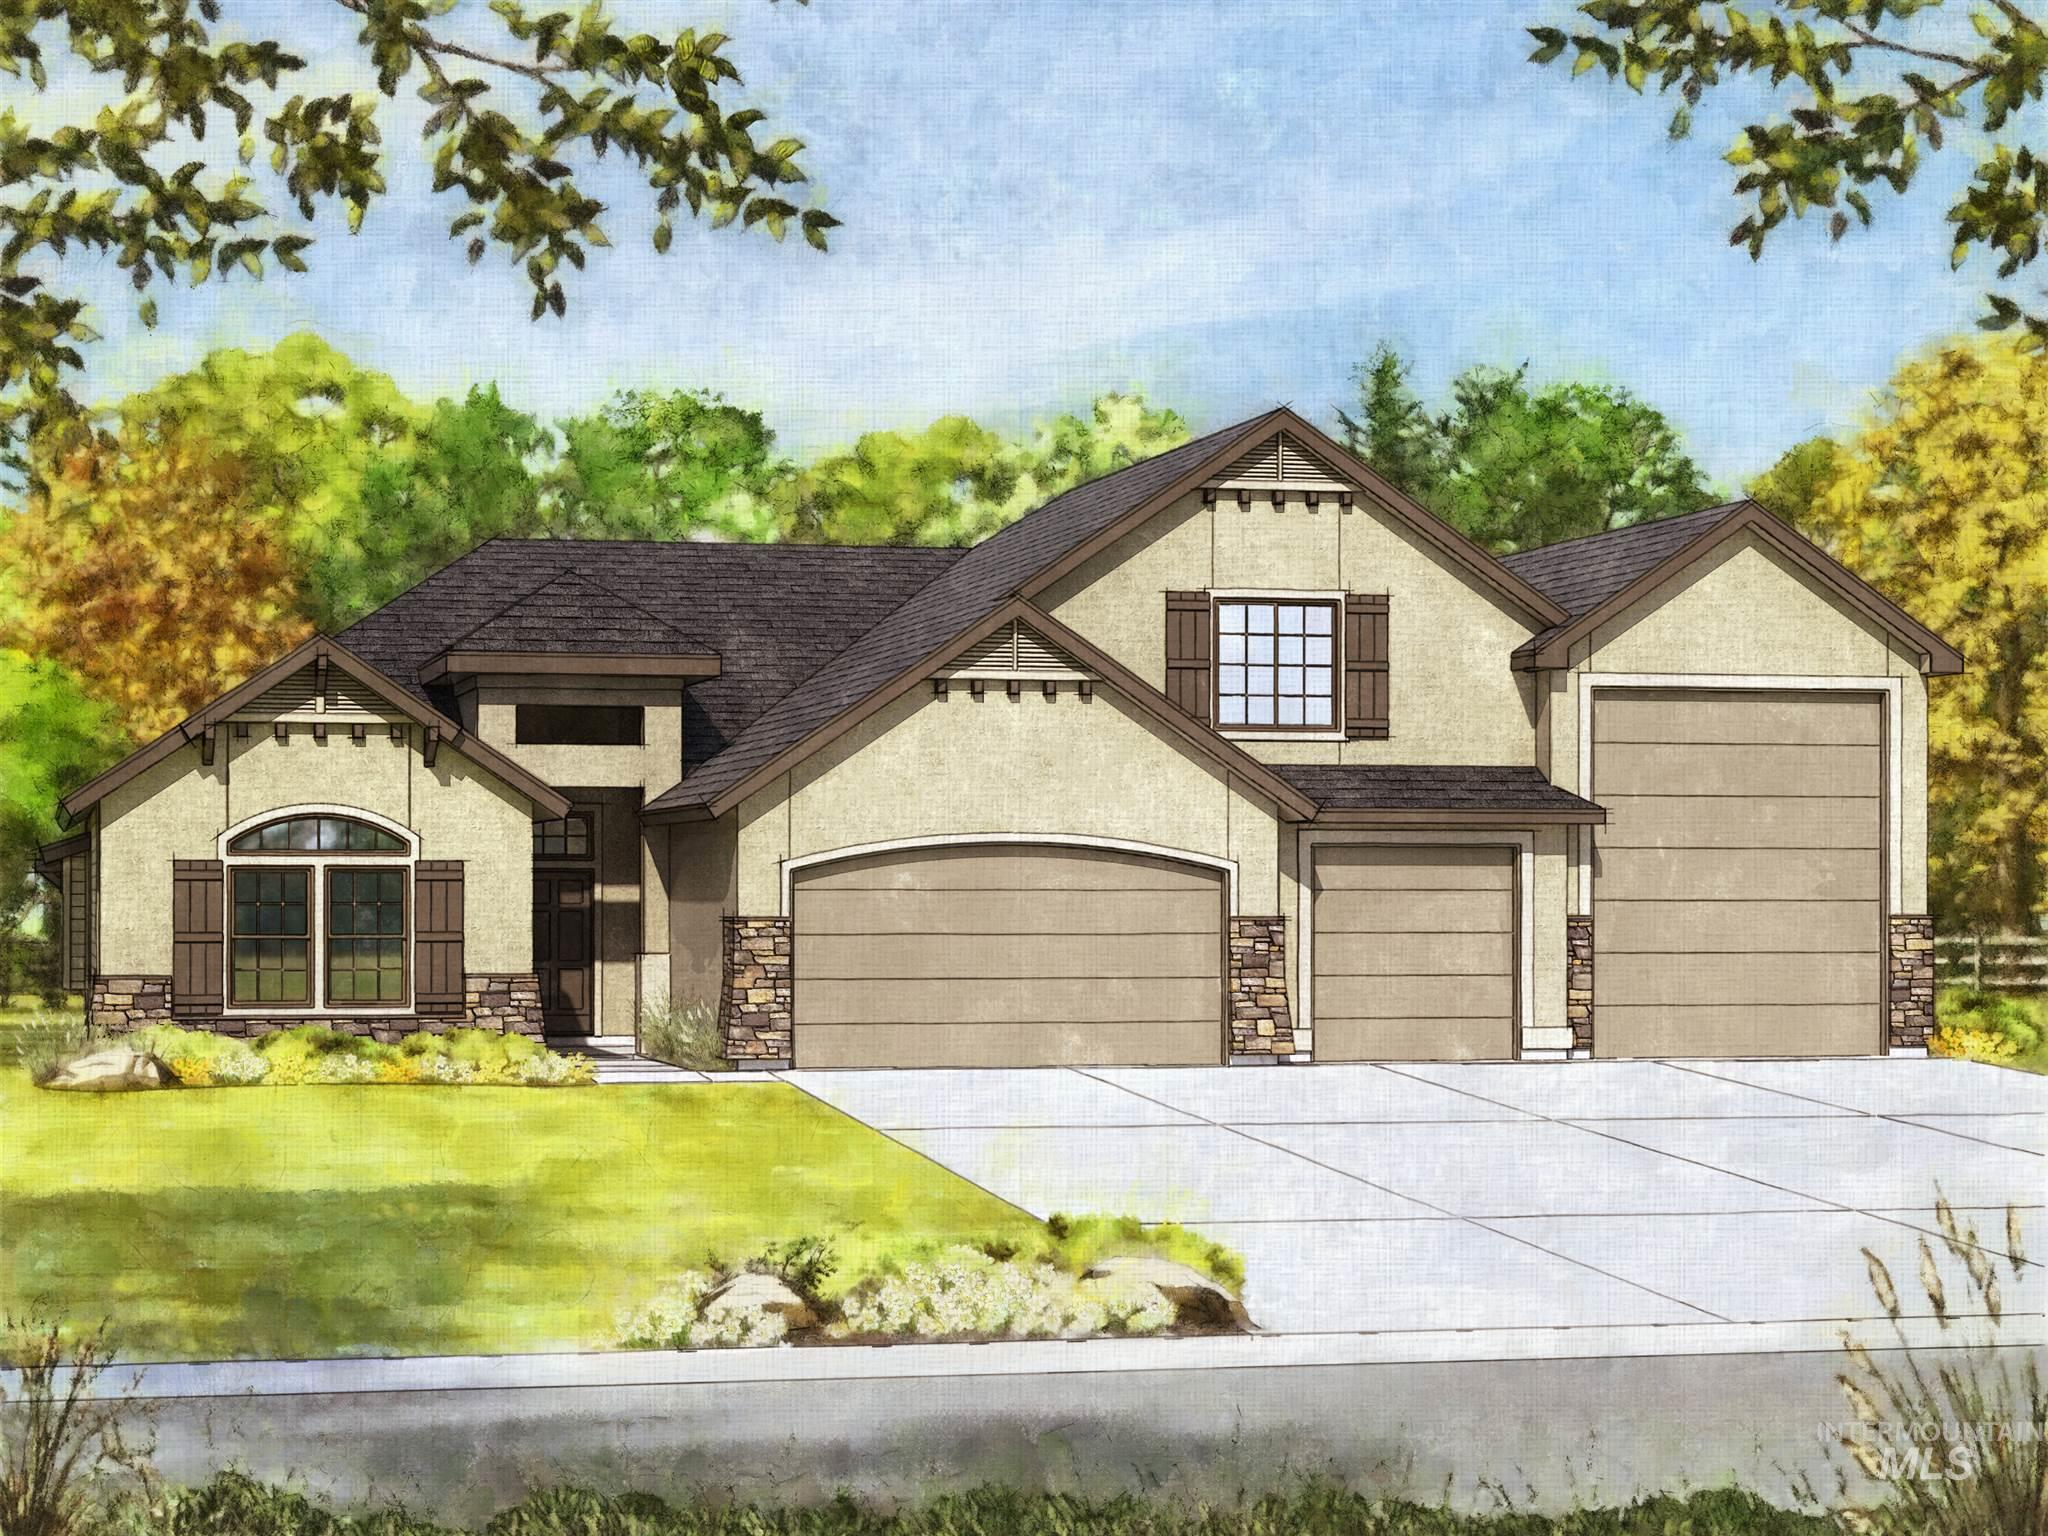 Photo for 22765 Riley Ct, Middleton, ID 83644 (MLS # 98775564)